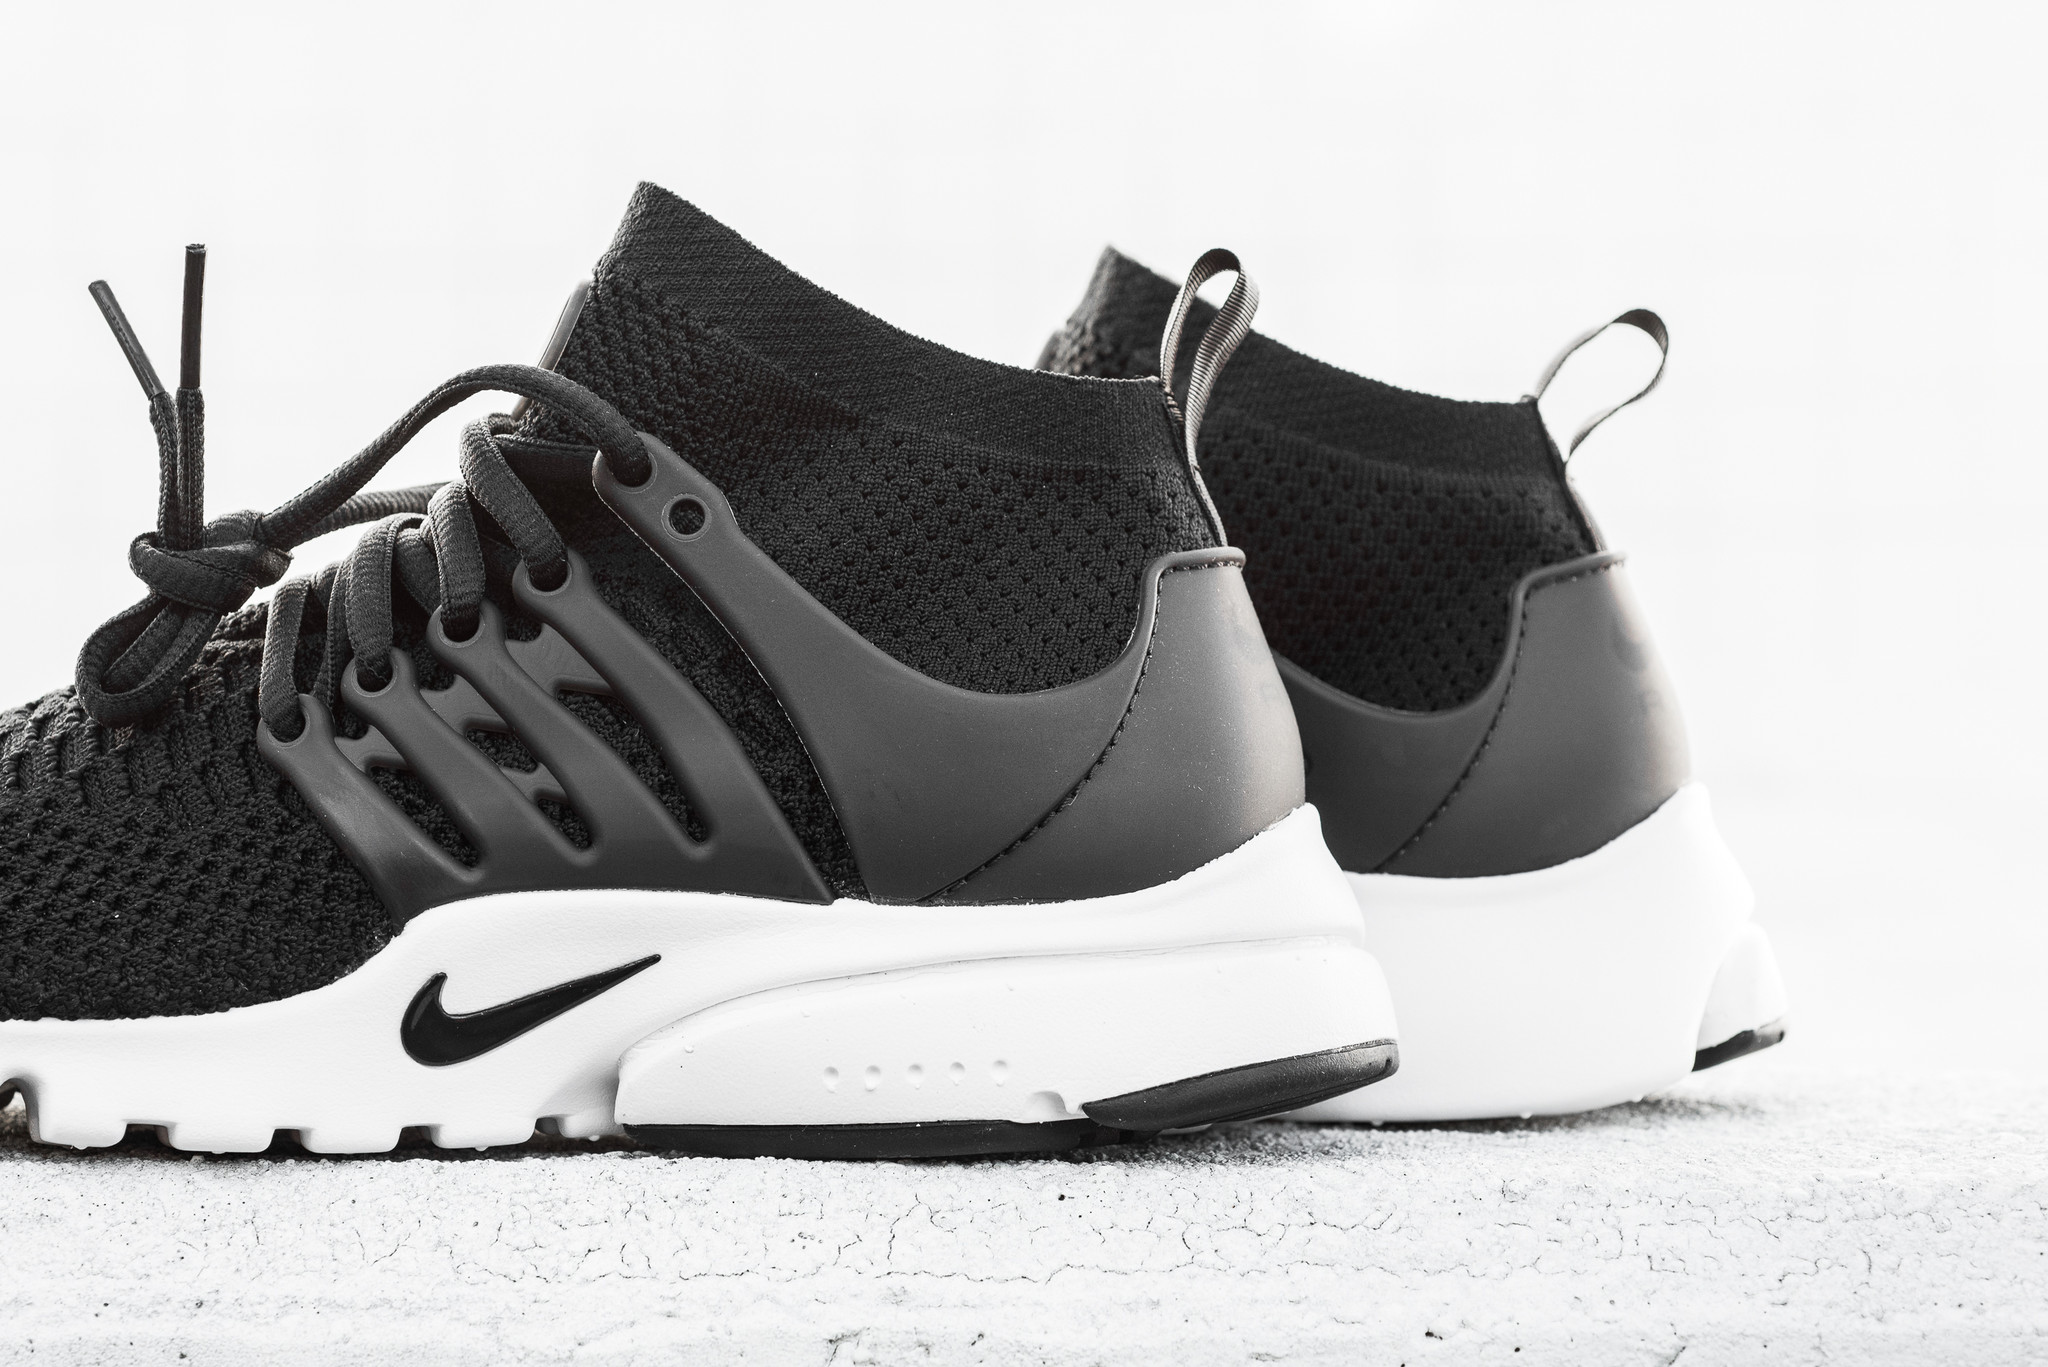 huge selection of 6760e 69810 Classic Shades On This Nike Air Presto Ultra Flyknit For Women